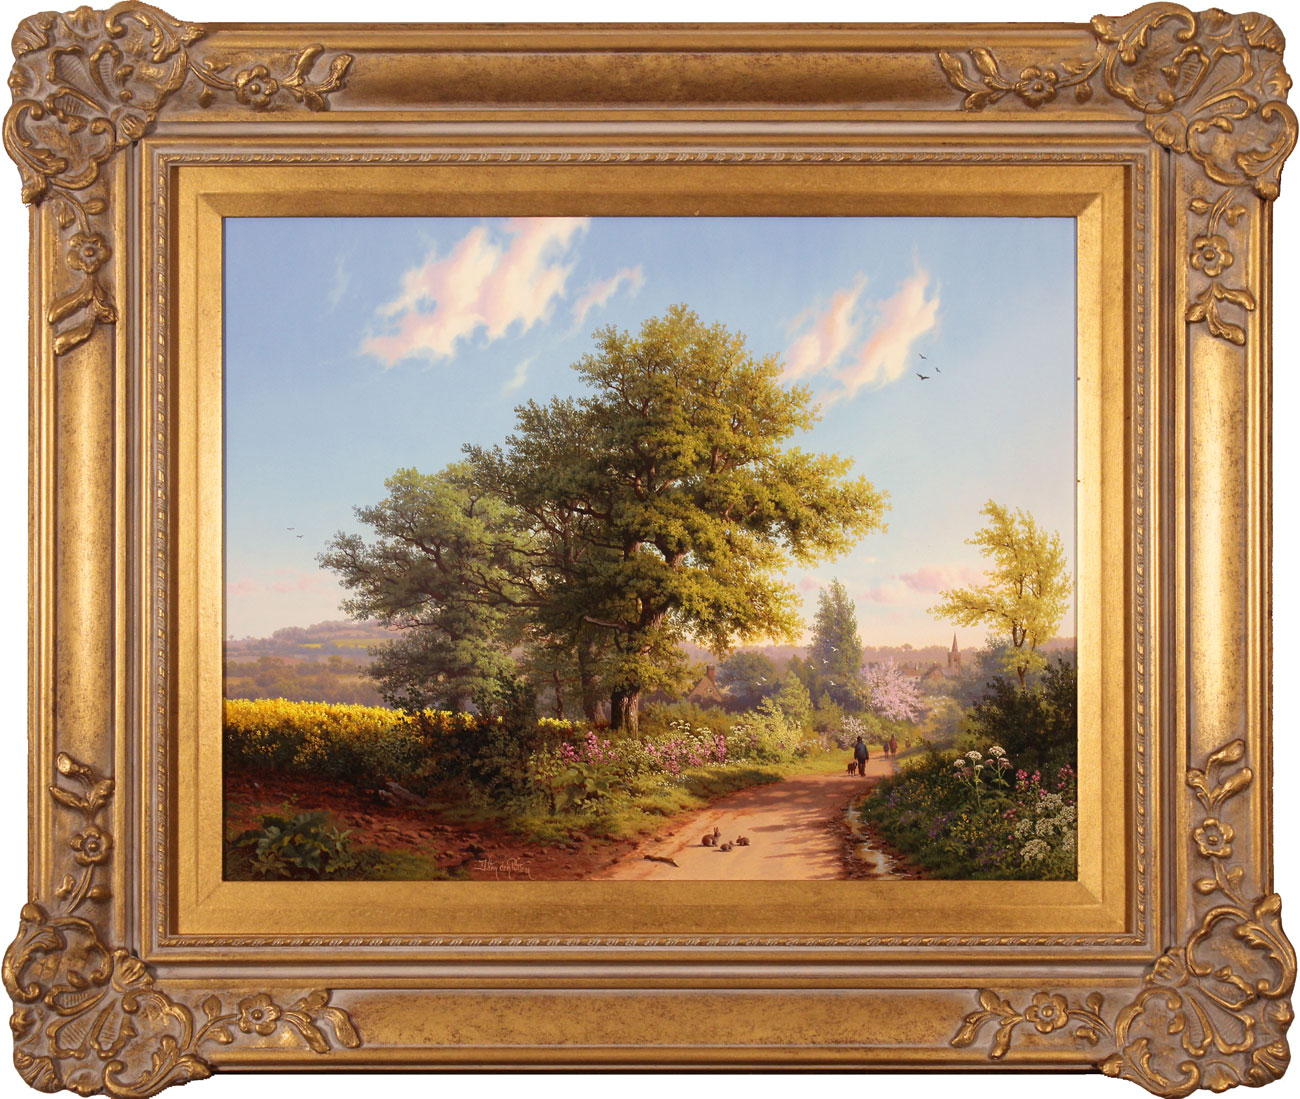 Daniel Van Der Putten, Original oil painting on panel, Road to Daventry in Spring. Click to enlarge